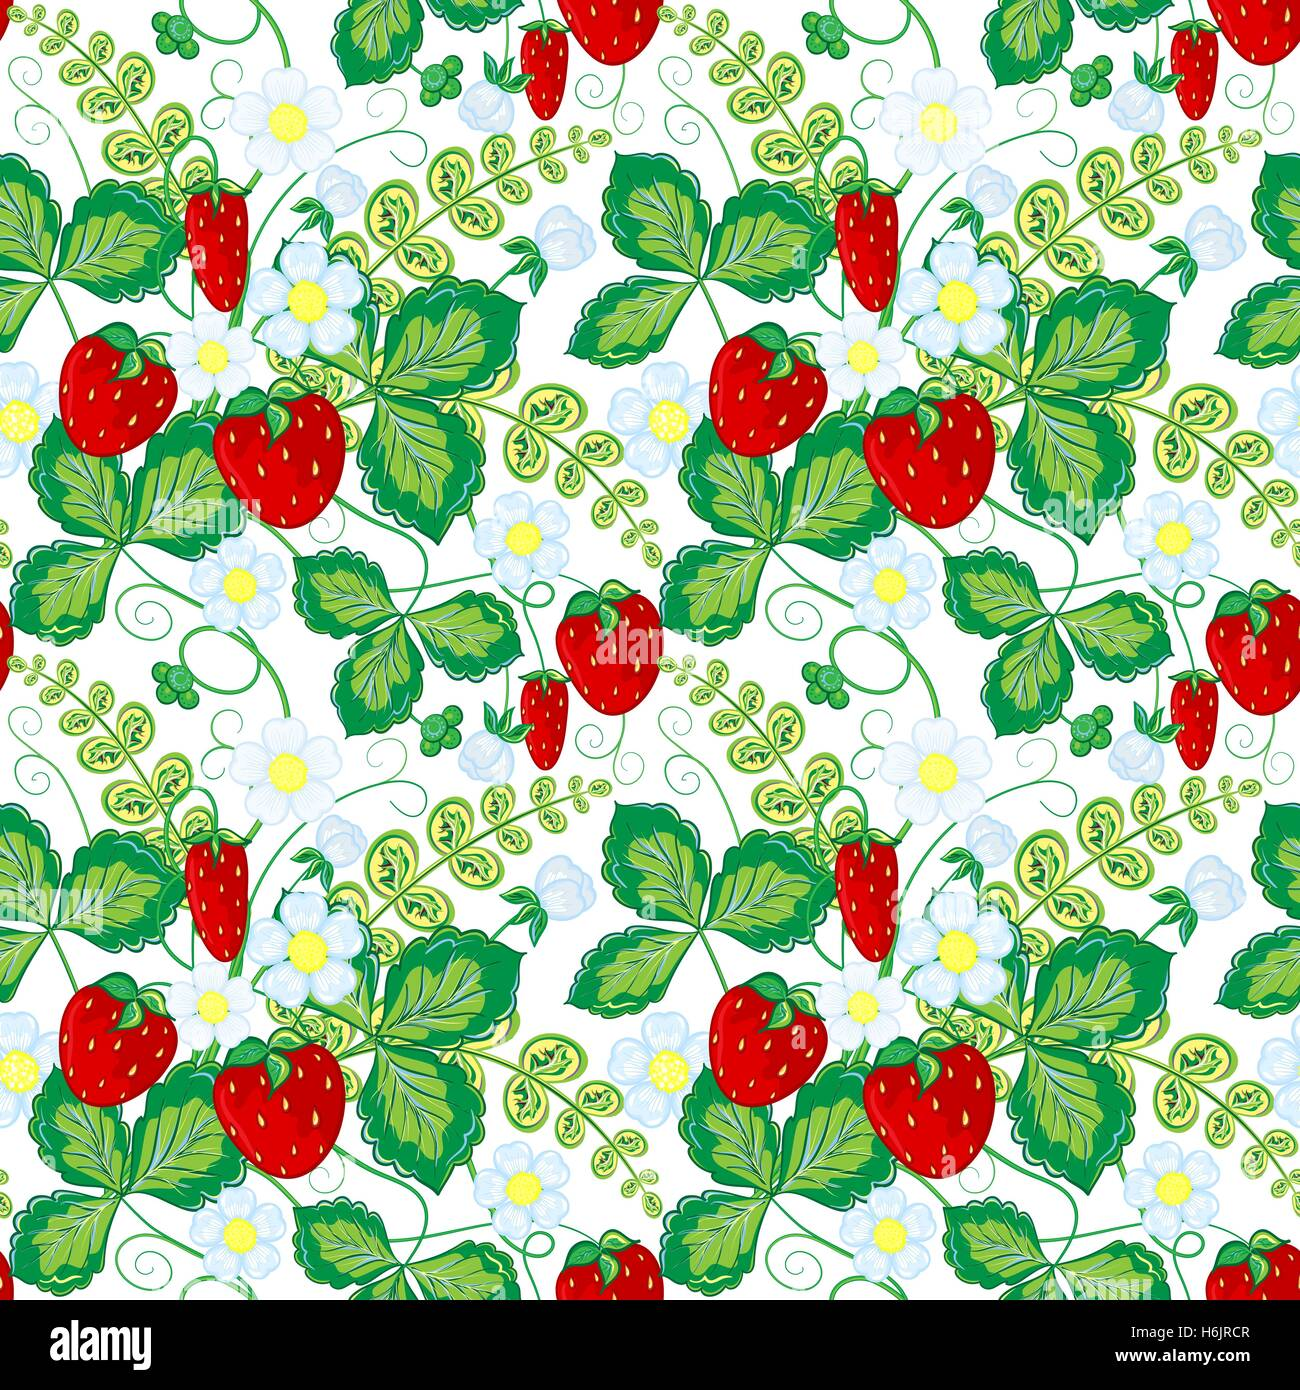 Wallpapers pattern fills web page backgrounds surface textures - Seamless Pattern With Strawberries Perfect For Wallpapers Pattern Fills Web Page Backgrounds Surface Textures Textile